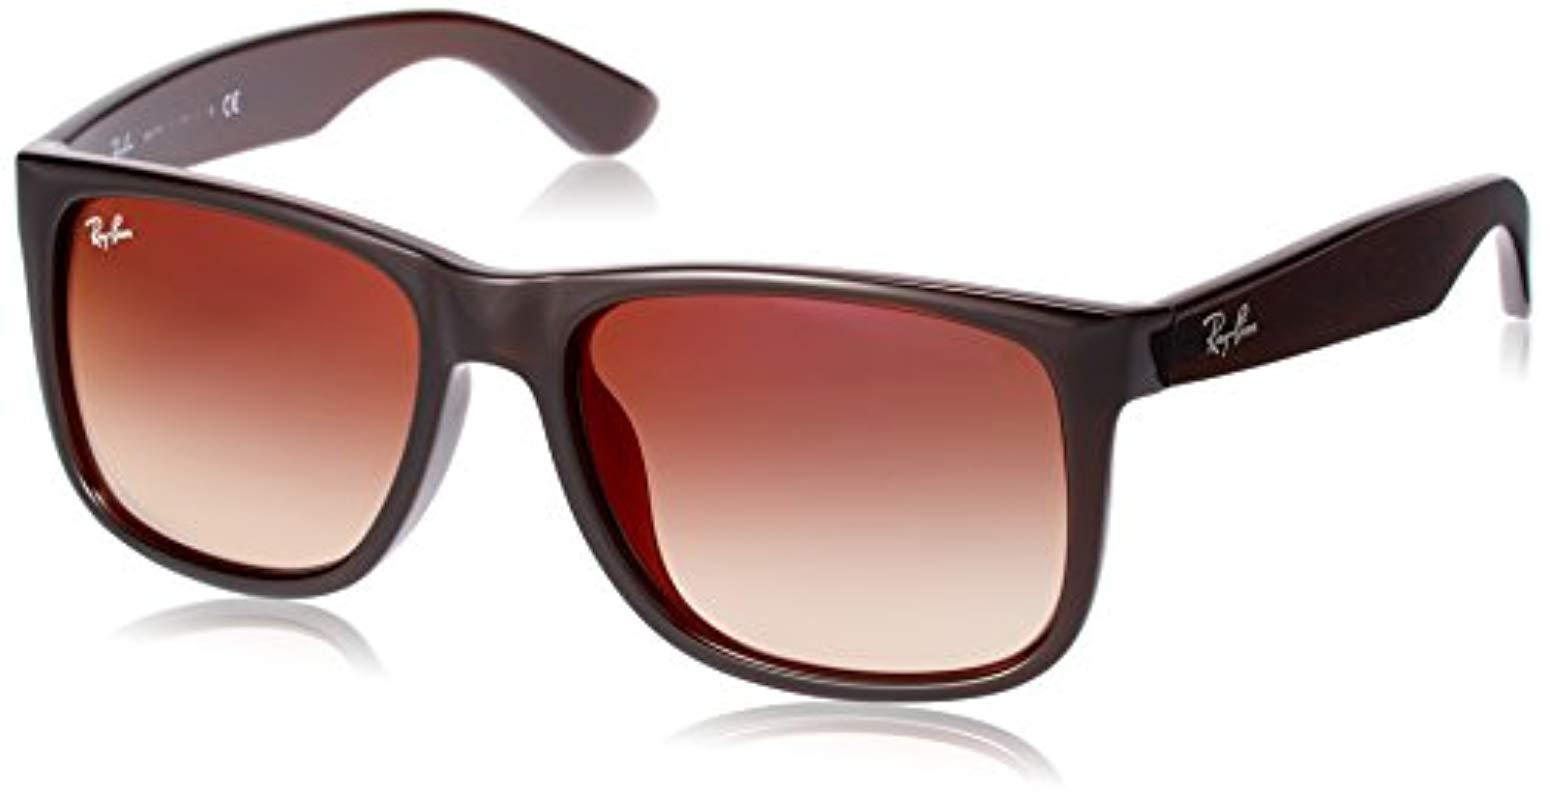 f5405f981b3a6b Lyst - Ray-Ban Justin Rb 4165f Sunglasses in Brown for Men